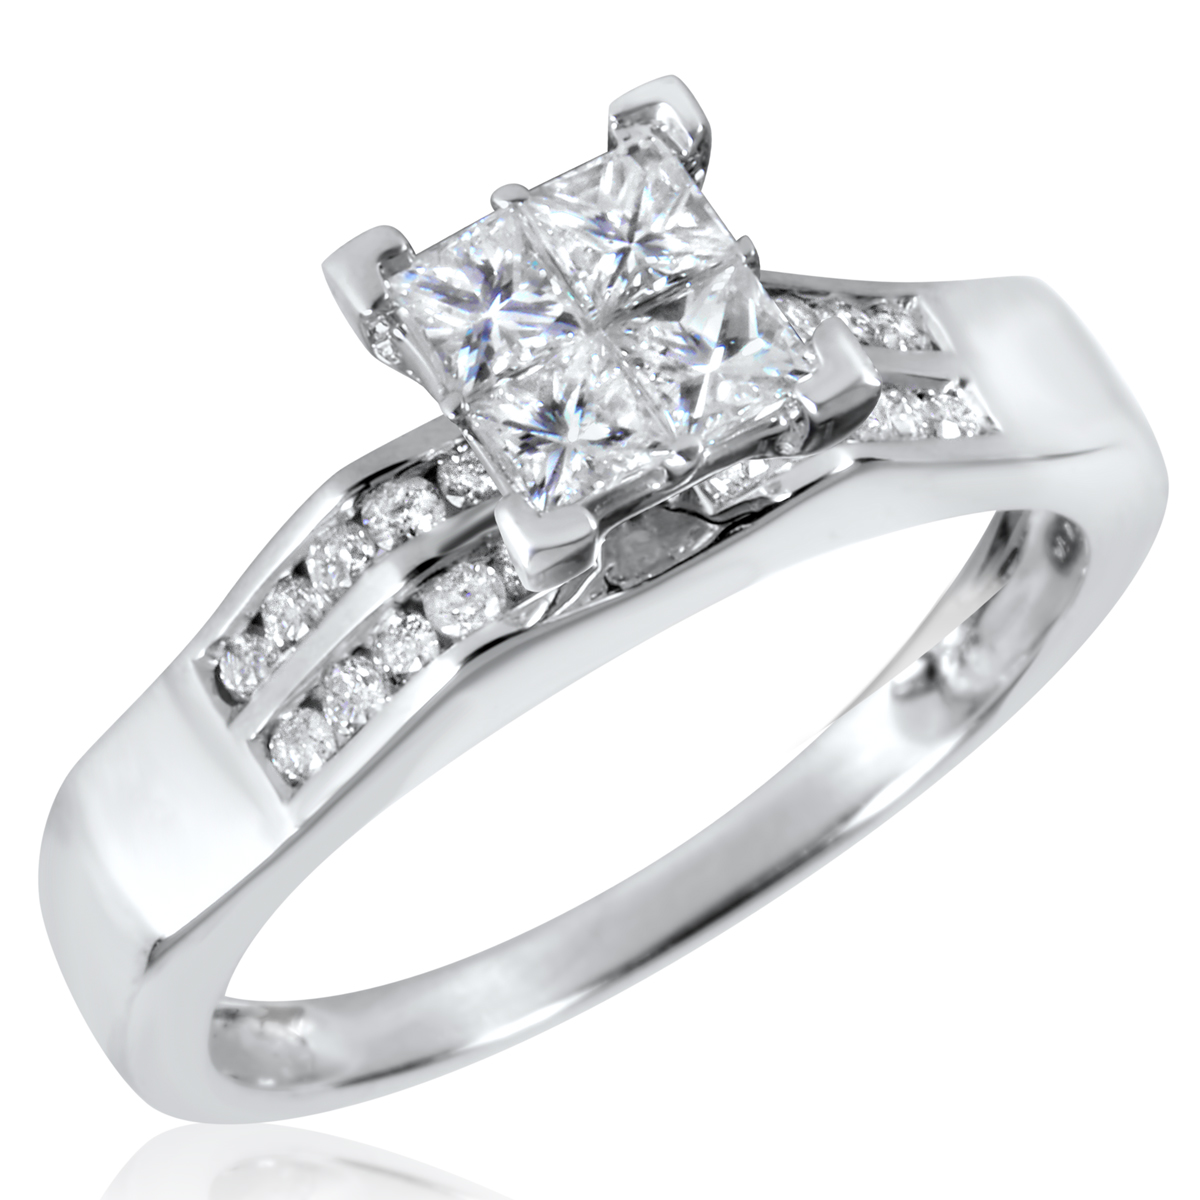 3/4 CT. T.W. Diamond Ladies Engagement Ring 10K White Gold